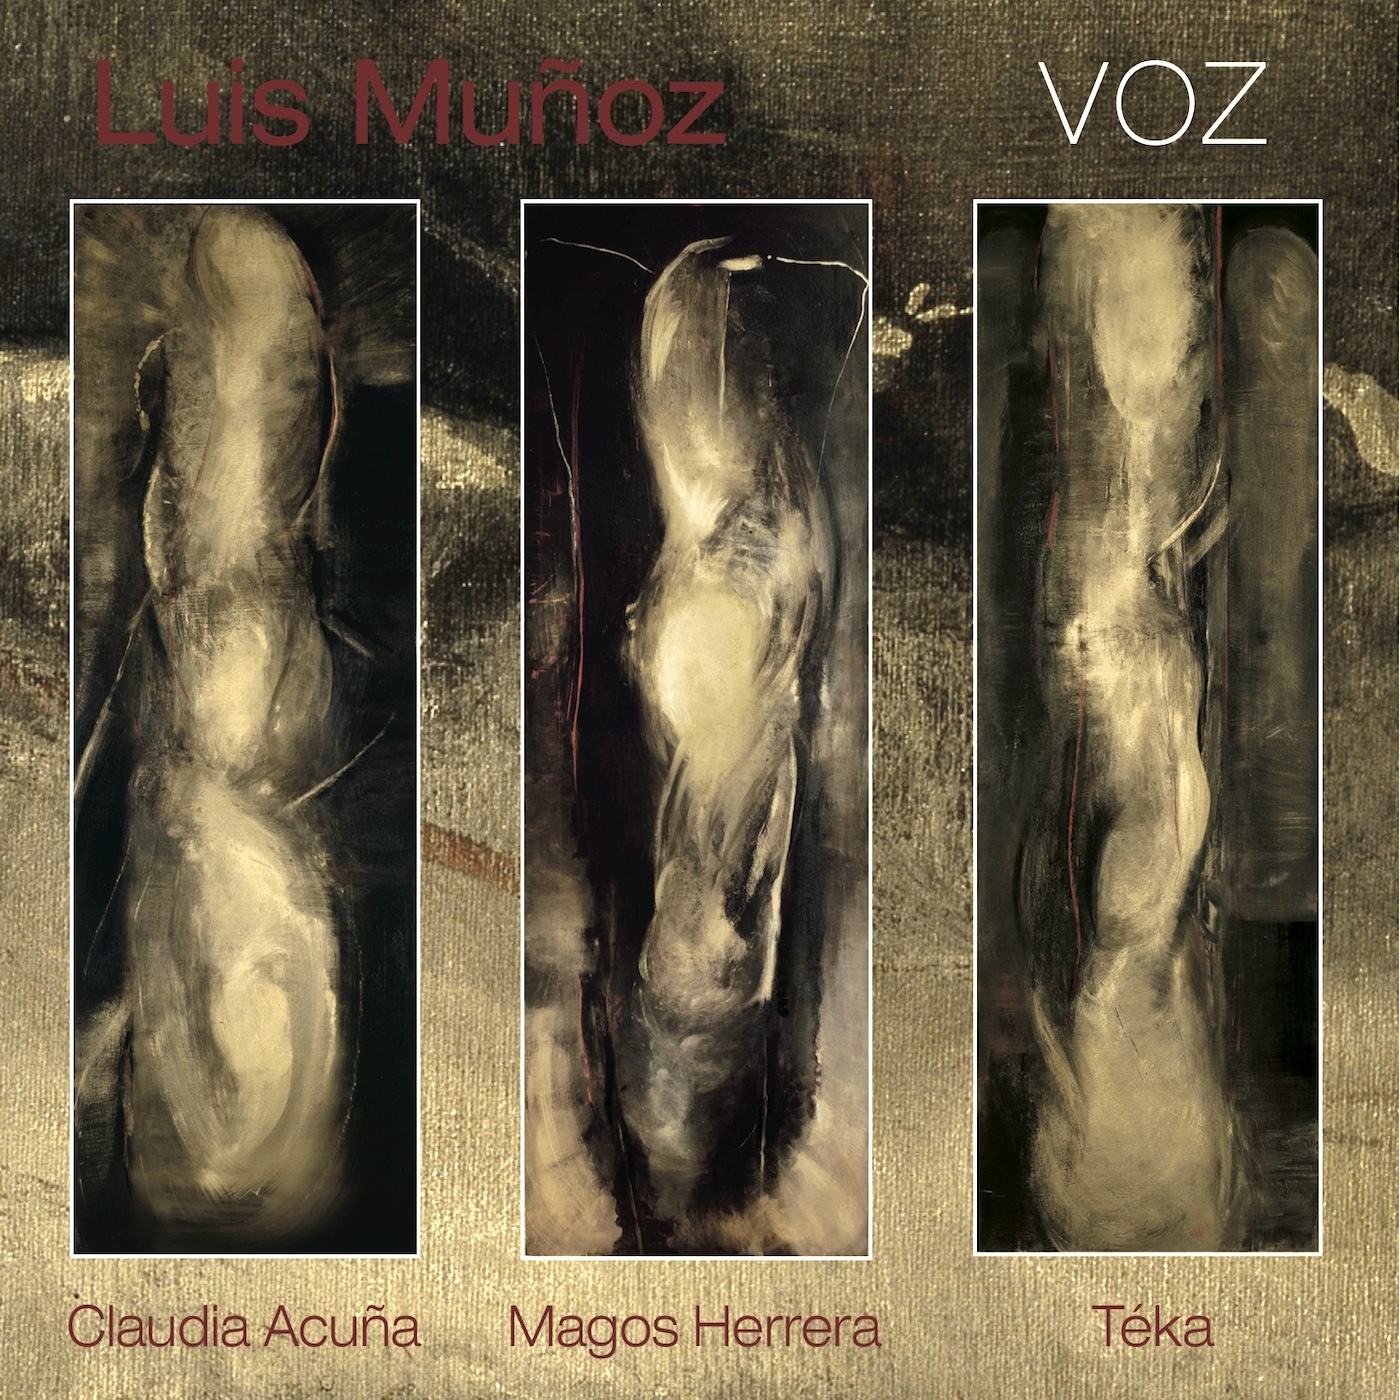 "LUIZ MUÑOS LATEST CD ""VOZ' IS A BEAUTIFULLY CRAFTED WORK"